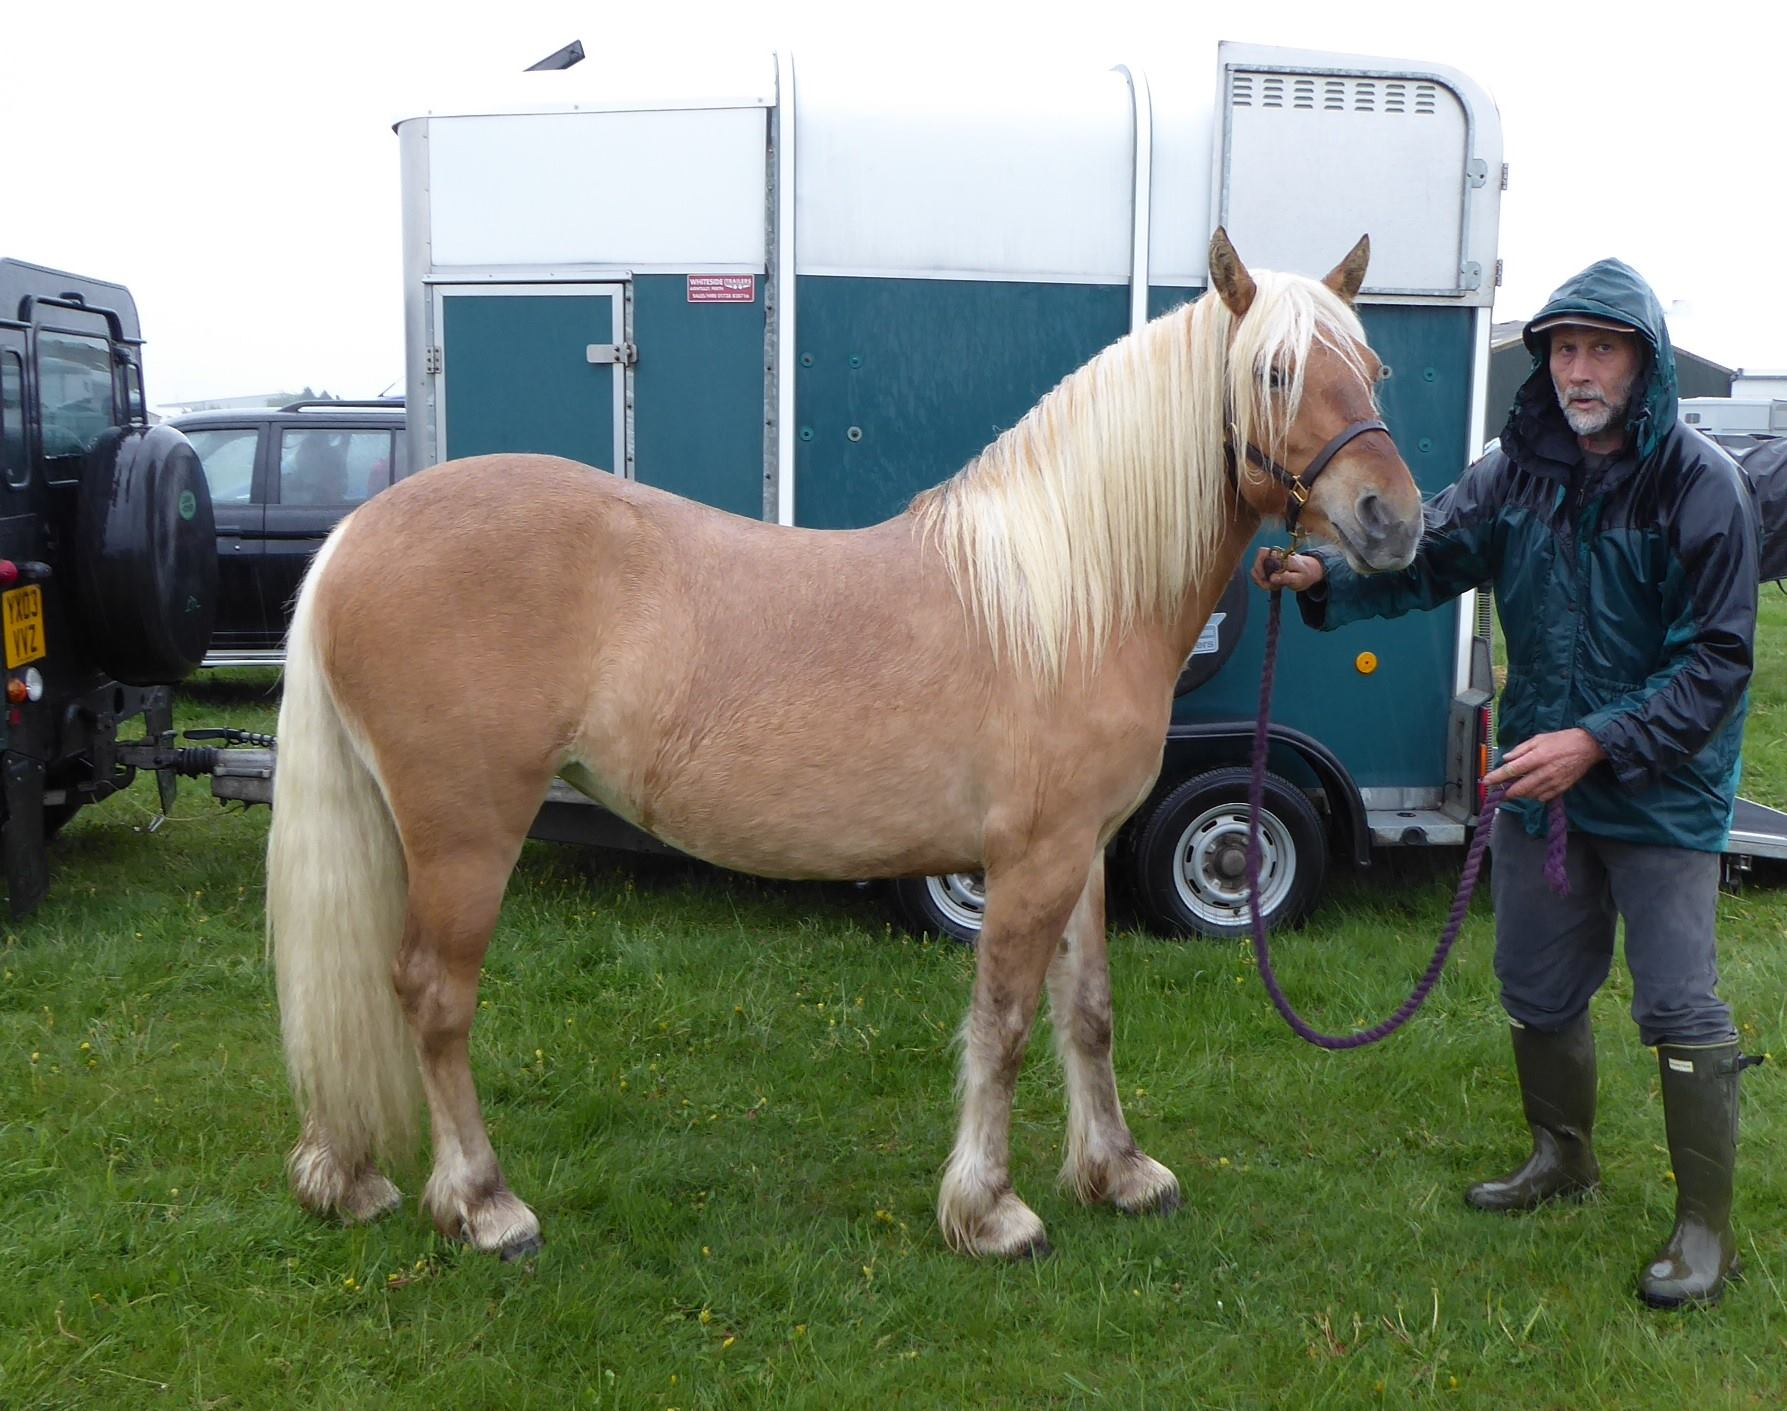 Luiseach of Liosmor kindly supplied by Wendy Sanders of Ruwenzori Highland Pony stud in the UK